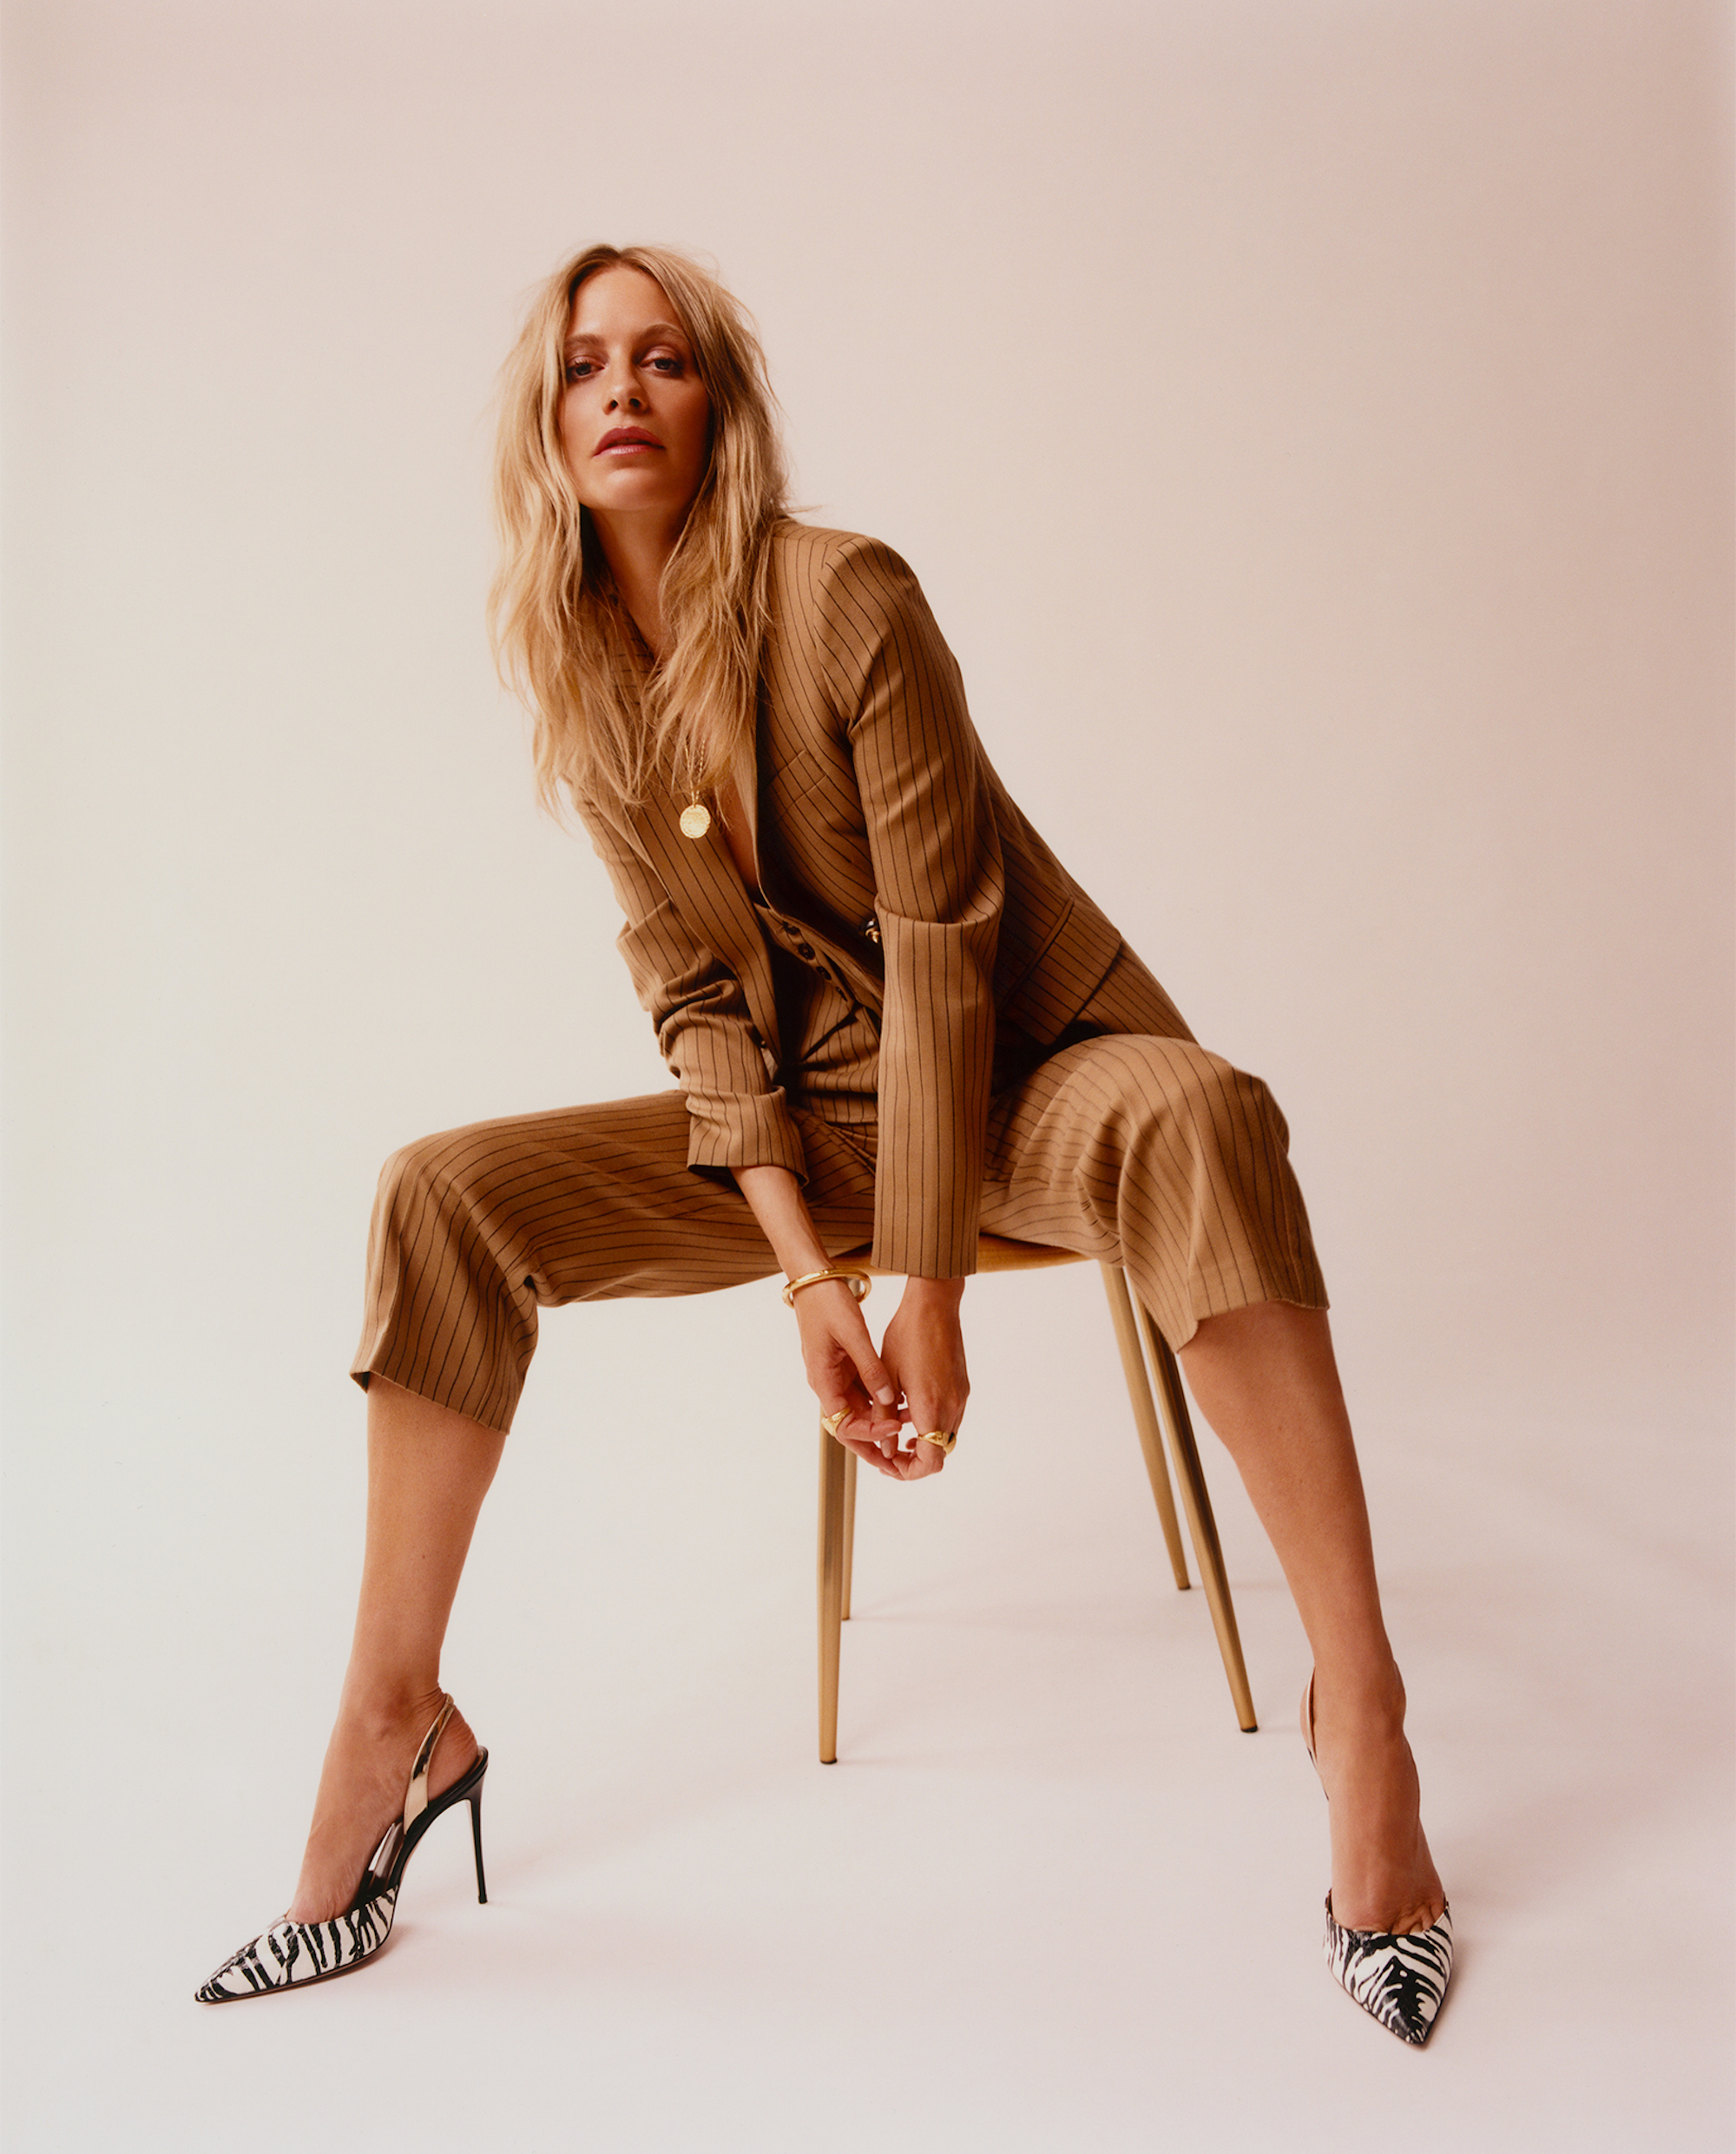 Poppy Delevingne covers Rollacoaster chair